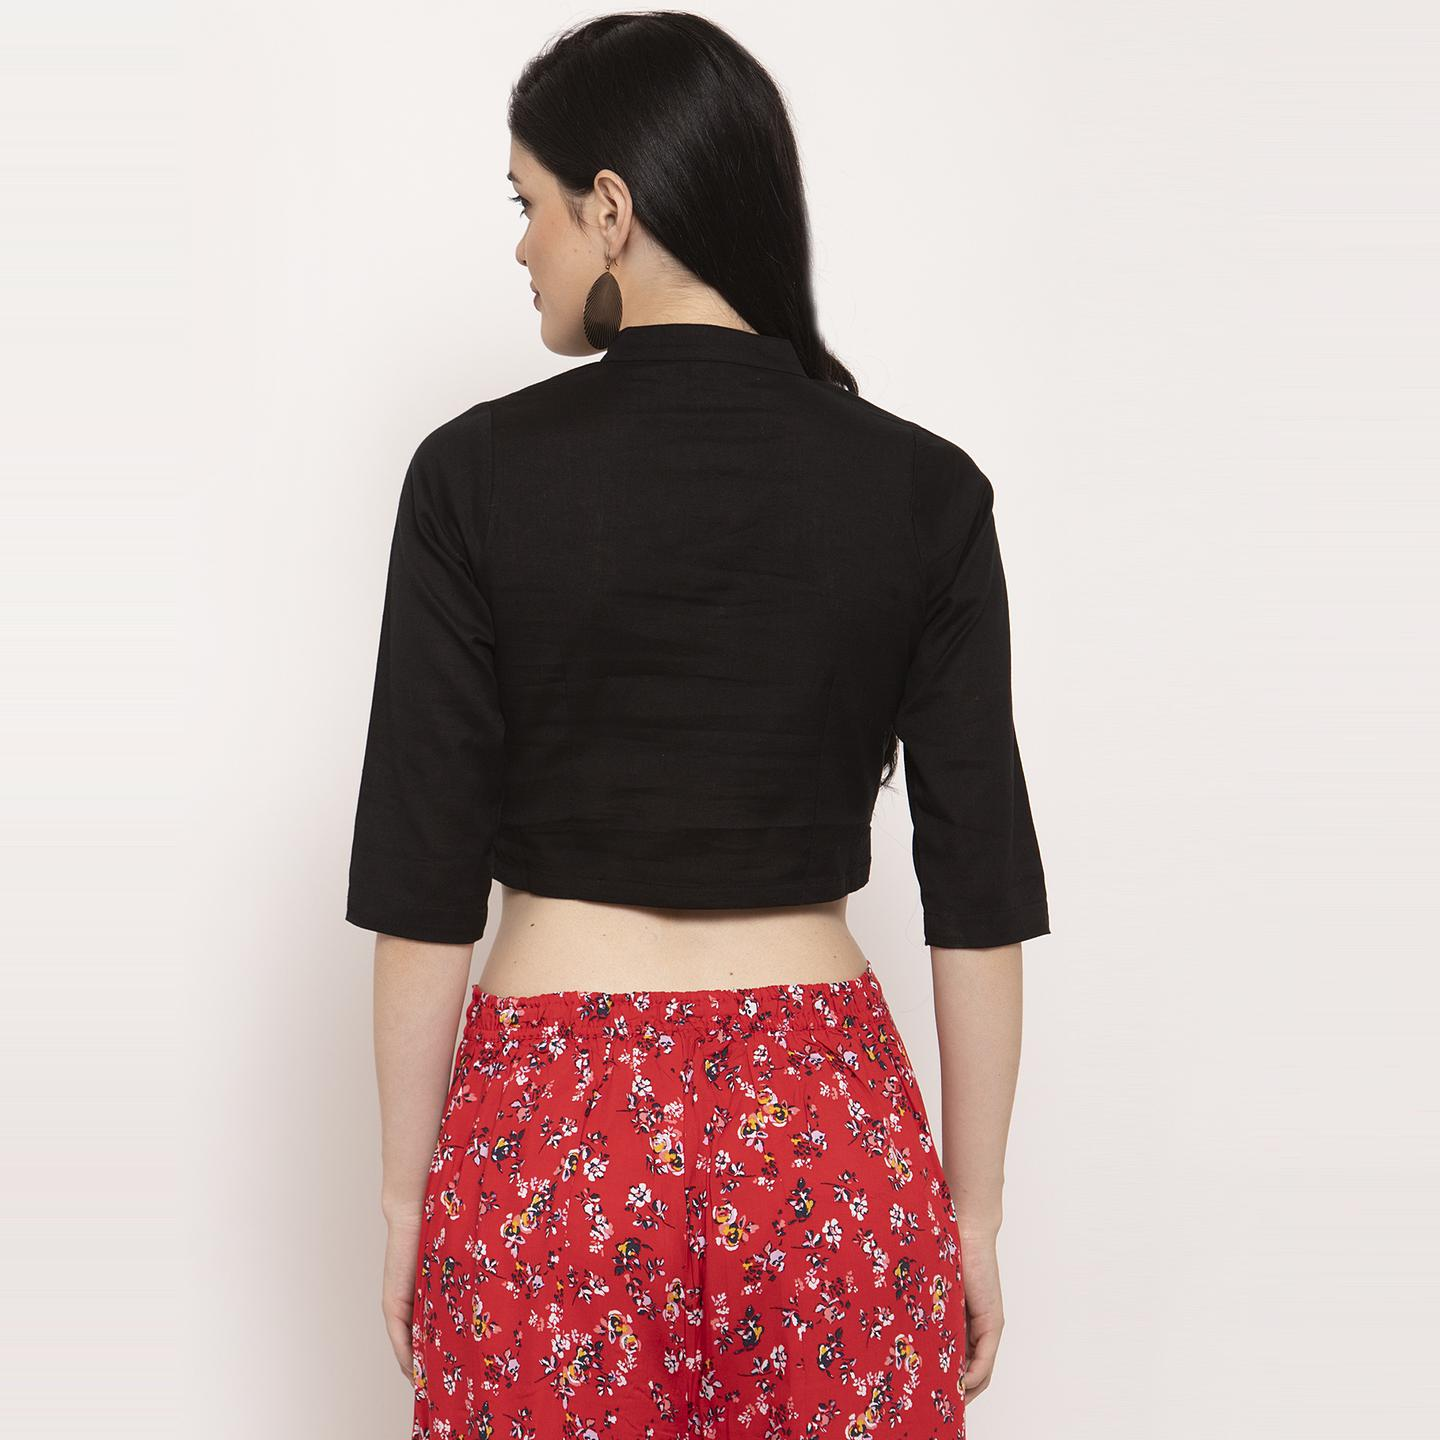 Ayaany - Black Colored Casual Wear Pure Cotton Blouse